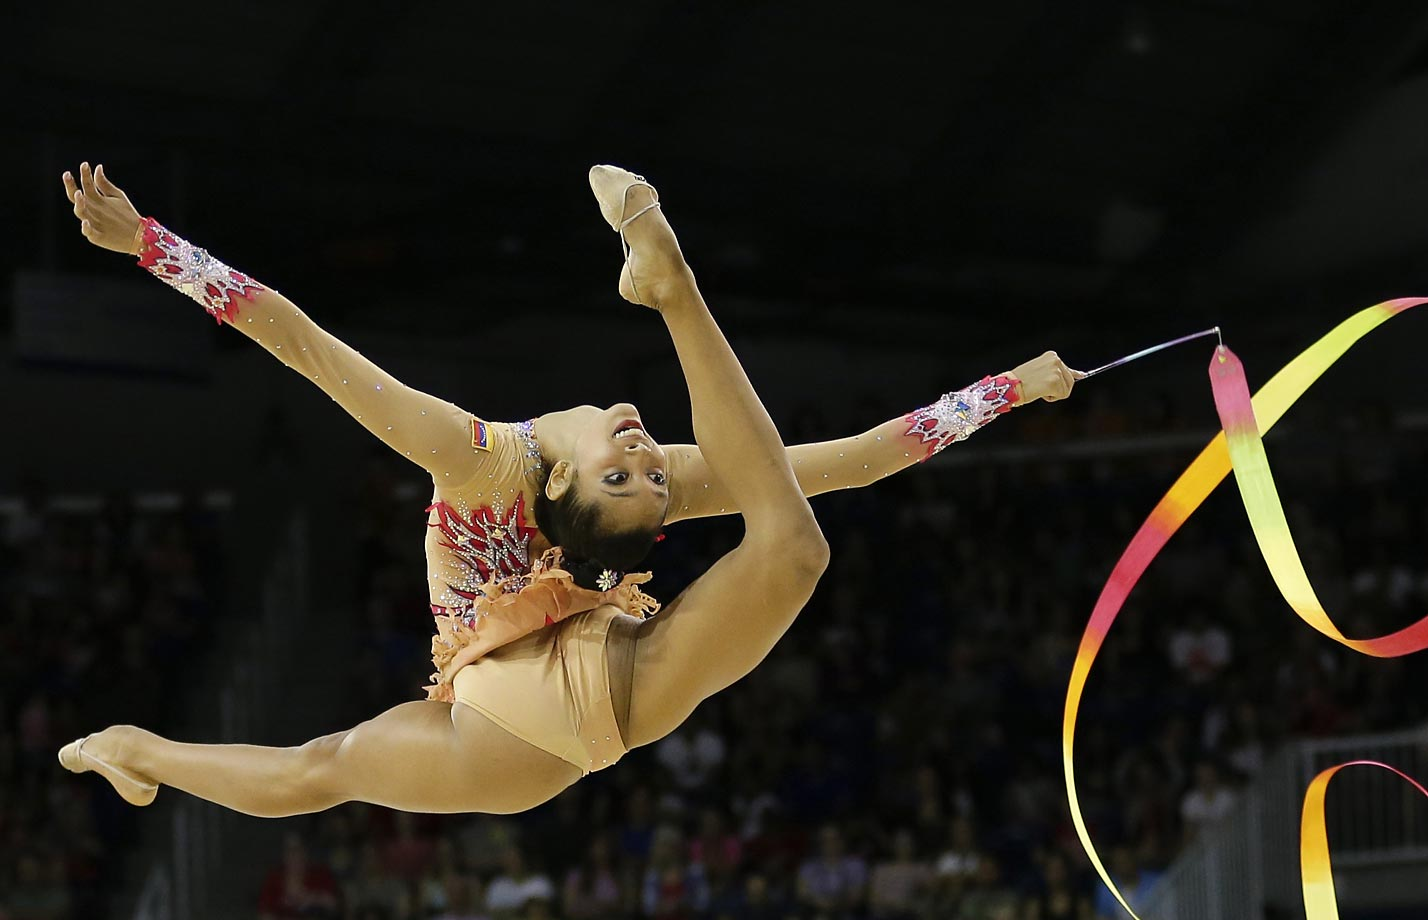 Grisbel Lopez performs during the individual all-around rhythmic gymnastics competition at the Pan Am Games.